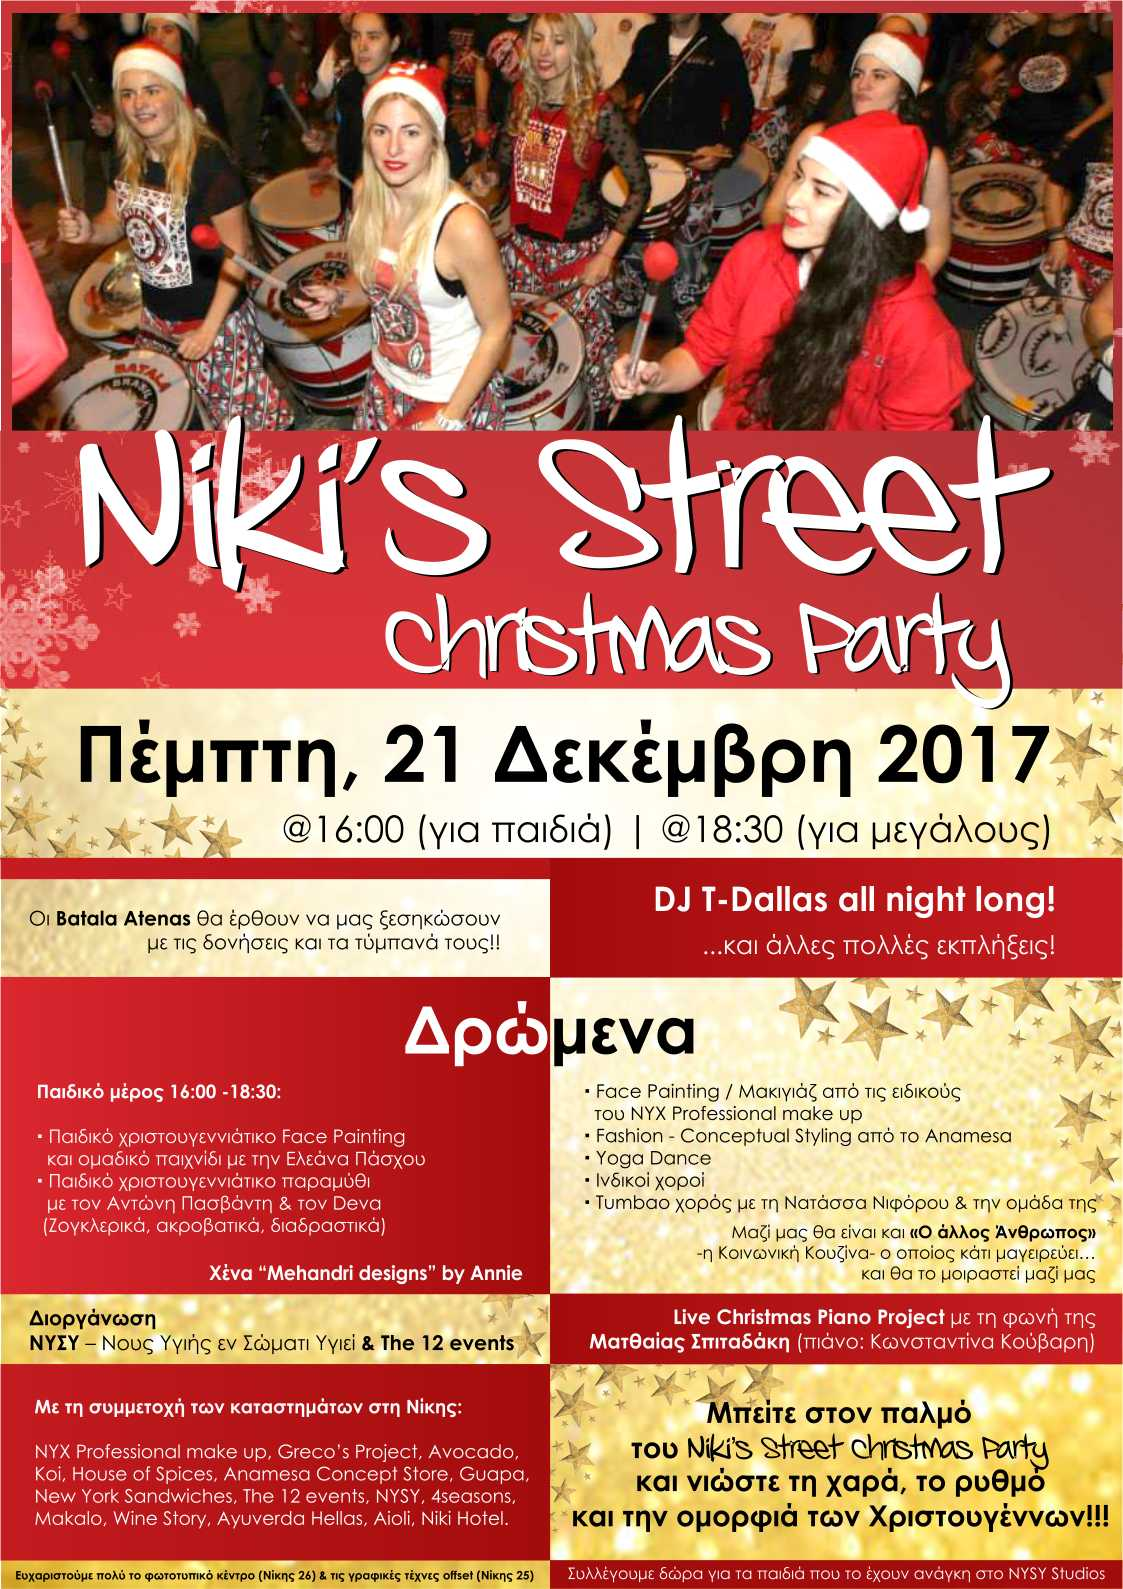 Niki's Street Christmas Party